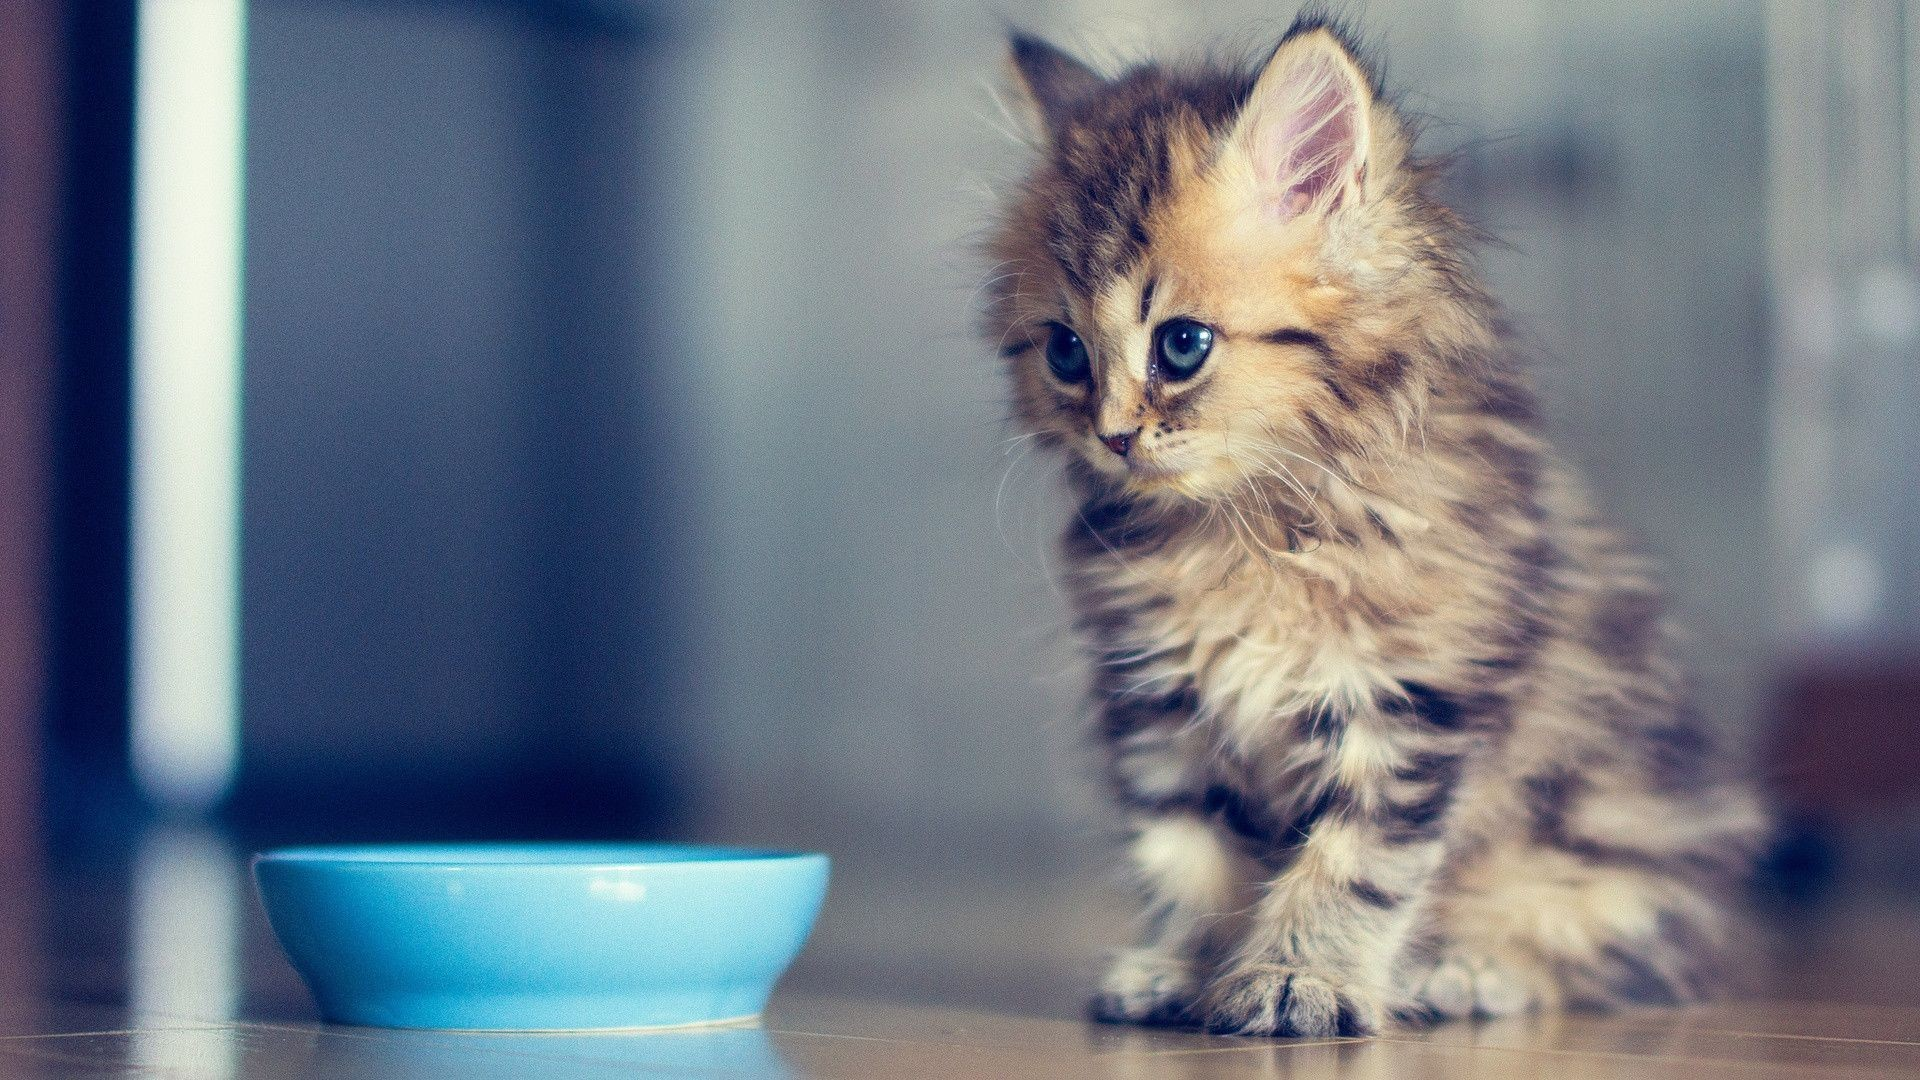 Cute kitten wallpapers 75 background pictures 1920x1200 kitten wallpaper elegant cute kitten desktop backgrounds impremedia thecheapjerseys Images